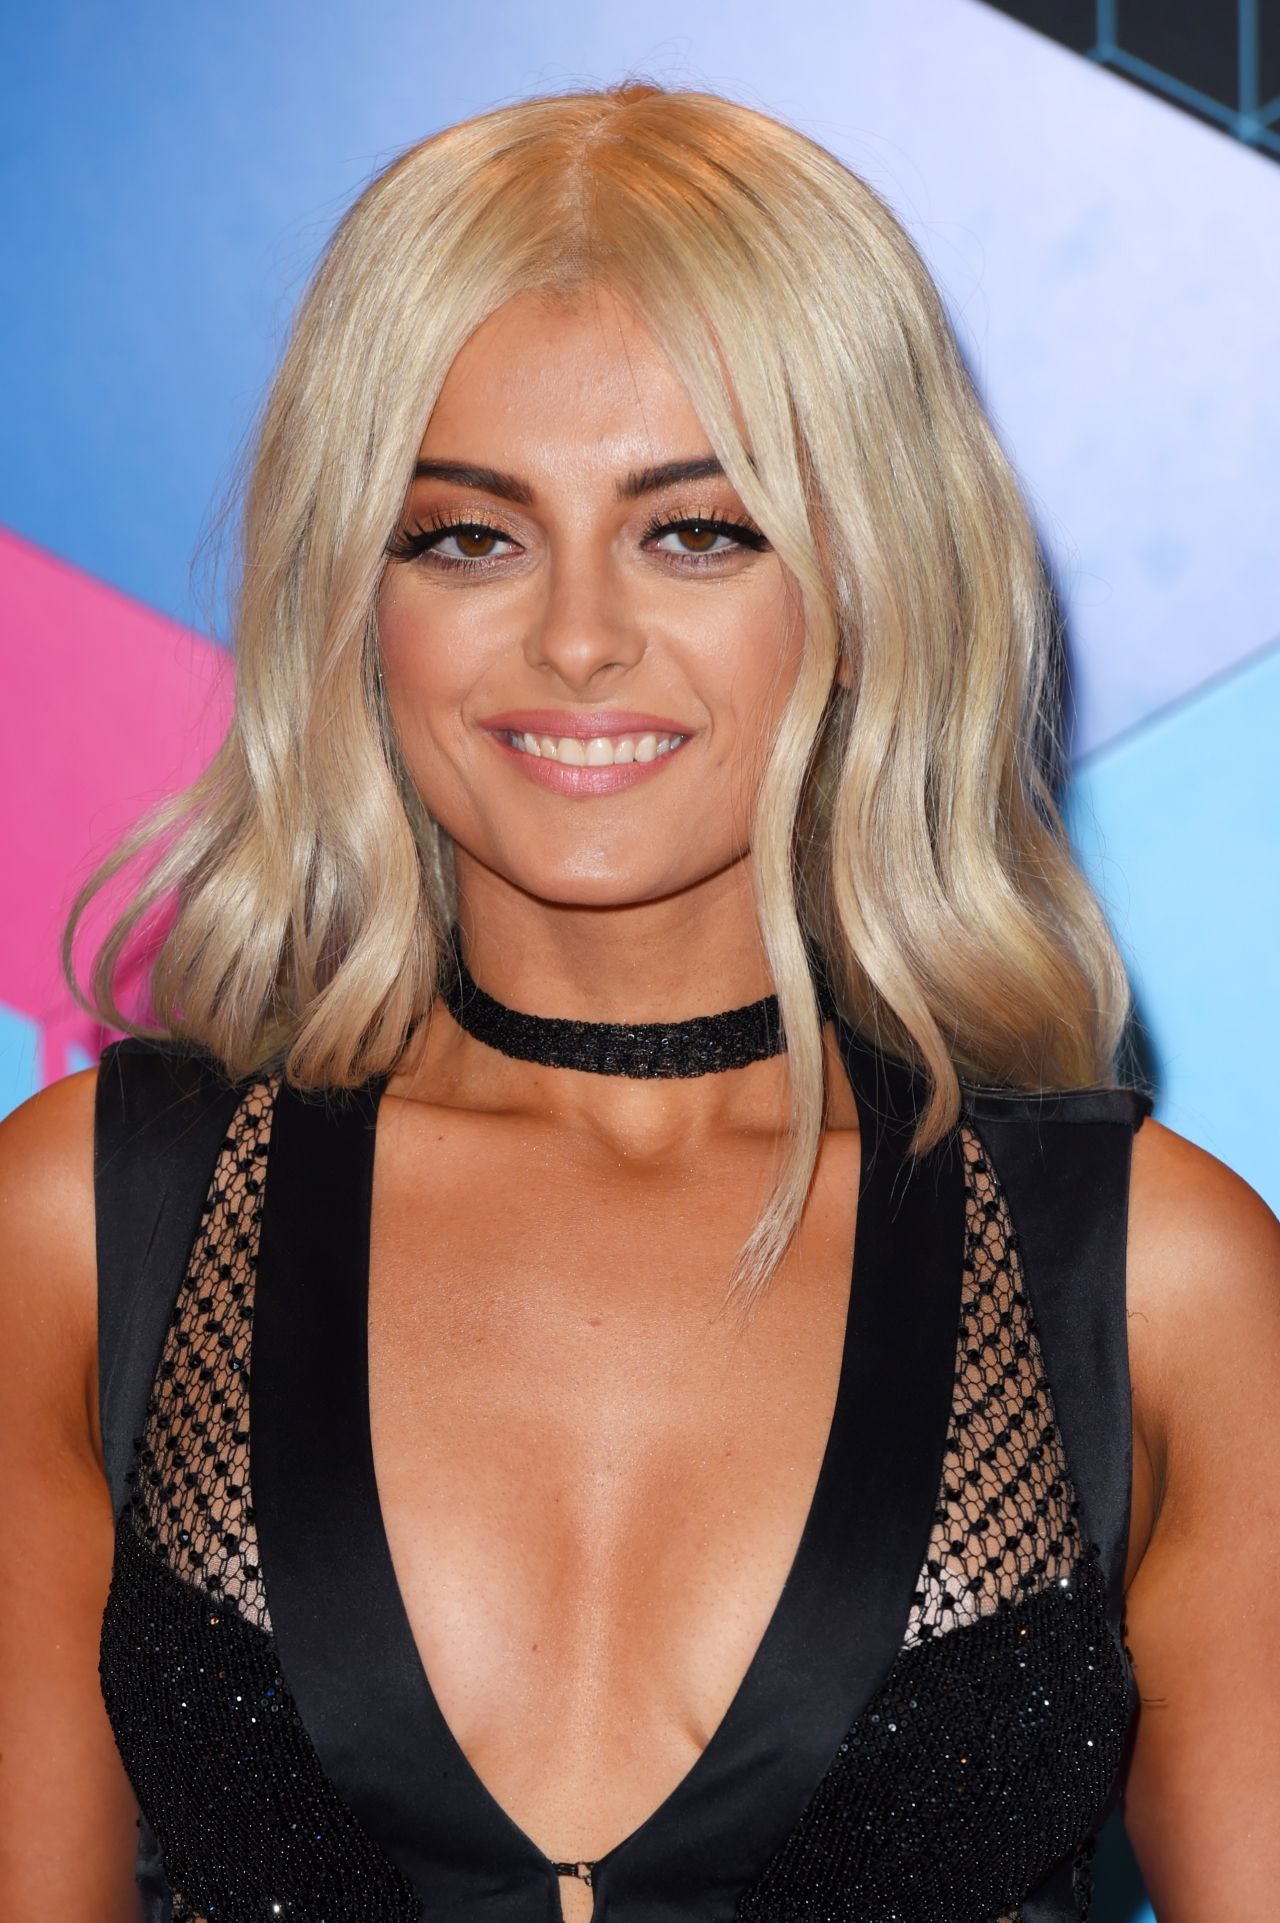 Official website of the New York City singersongwriter Bebe Rexha Sign up to receive email updates about the latest news and music